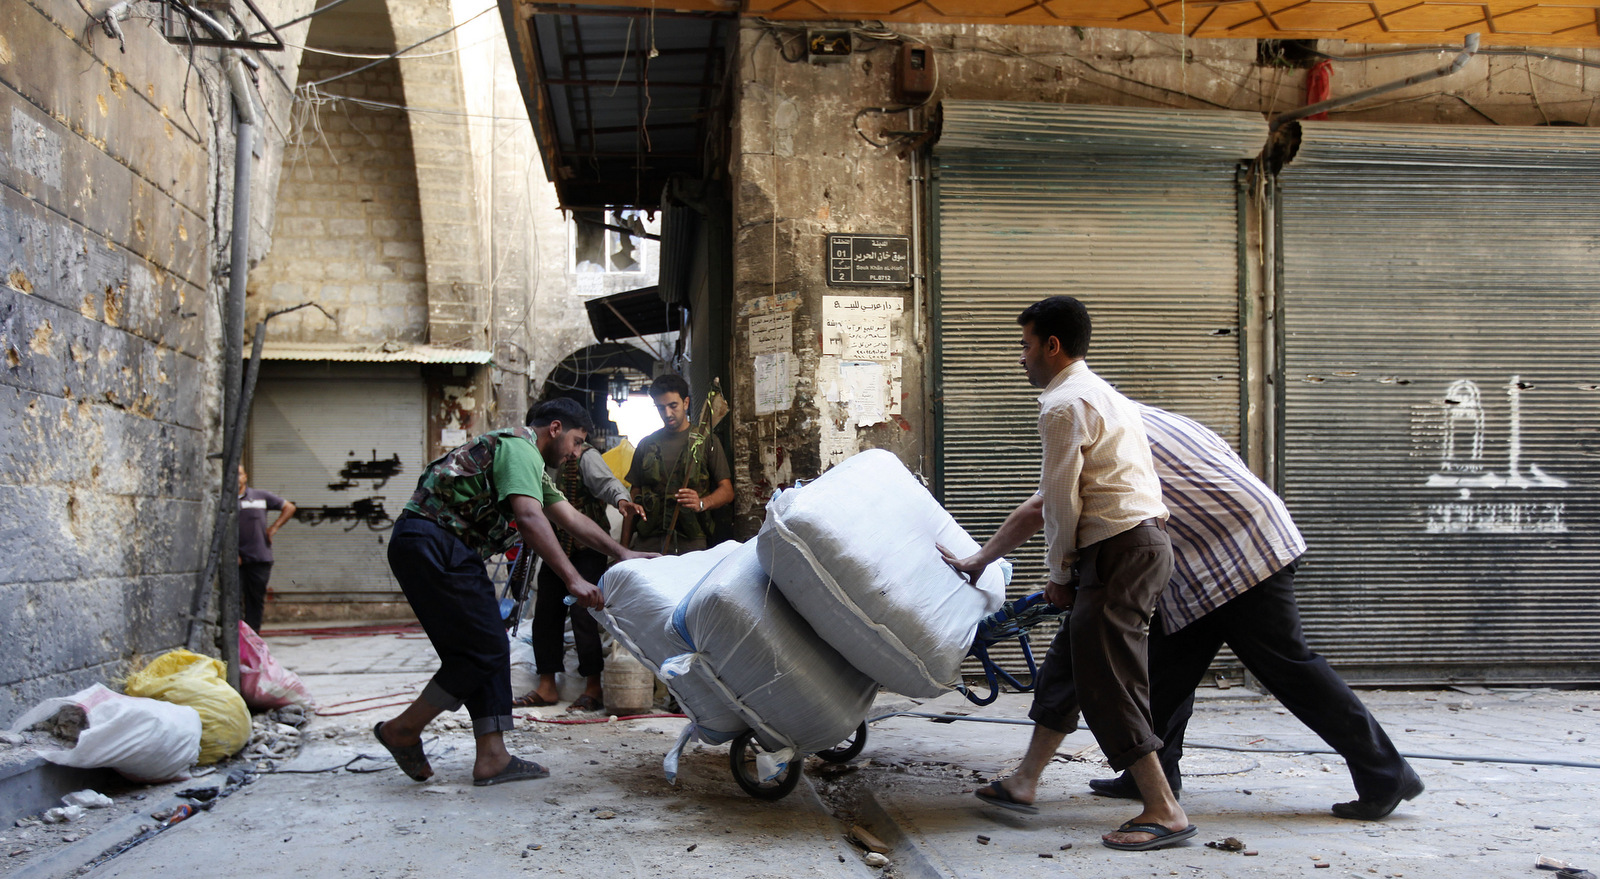 """A Free Syrian Army fighter moves supplies at the souk of the old city of Aleppo city, Syria, September 24, 2012. The Arabic on the closed shop at right reads: """"Aleppo."""" (AP/Hussein Malla)"""